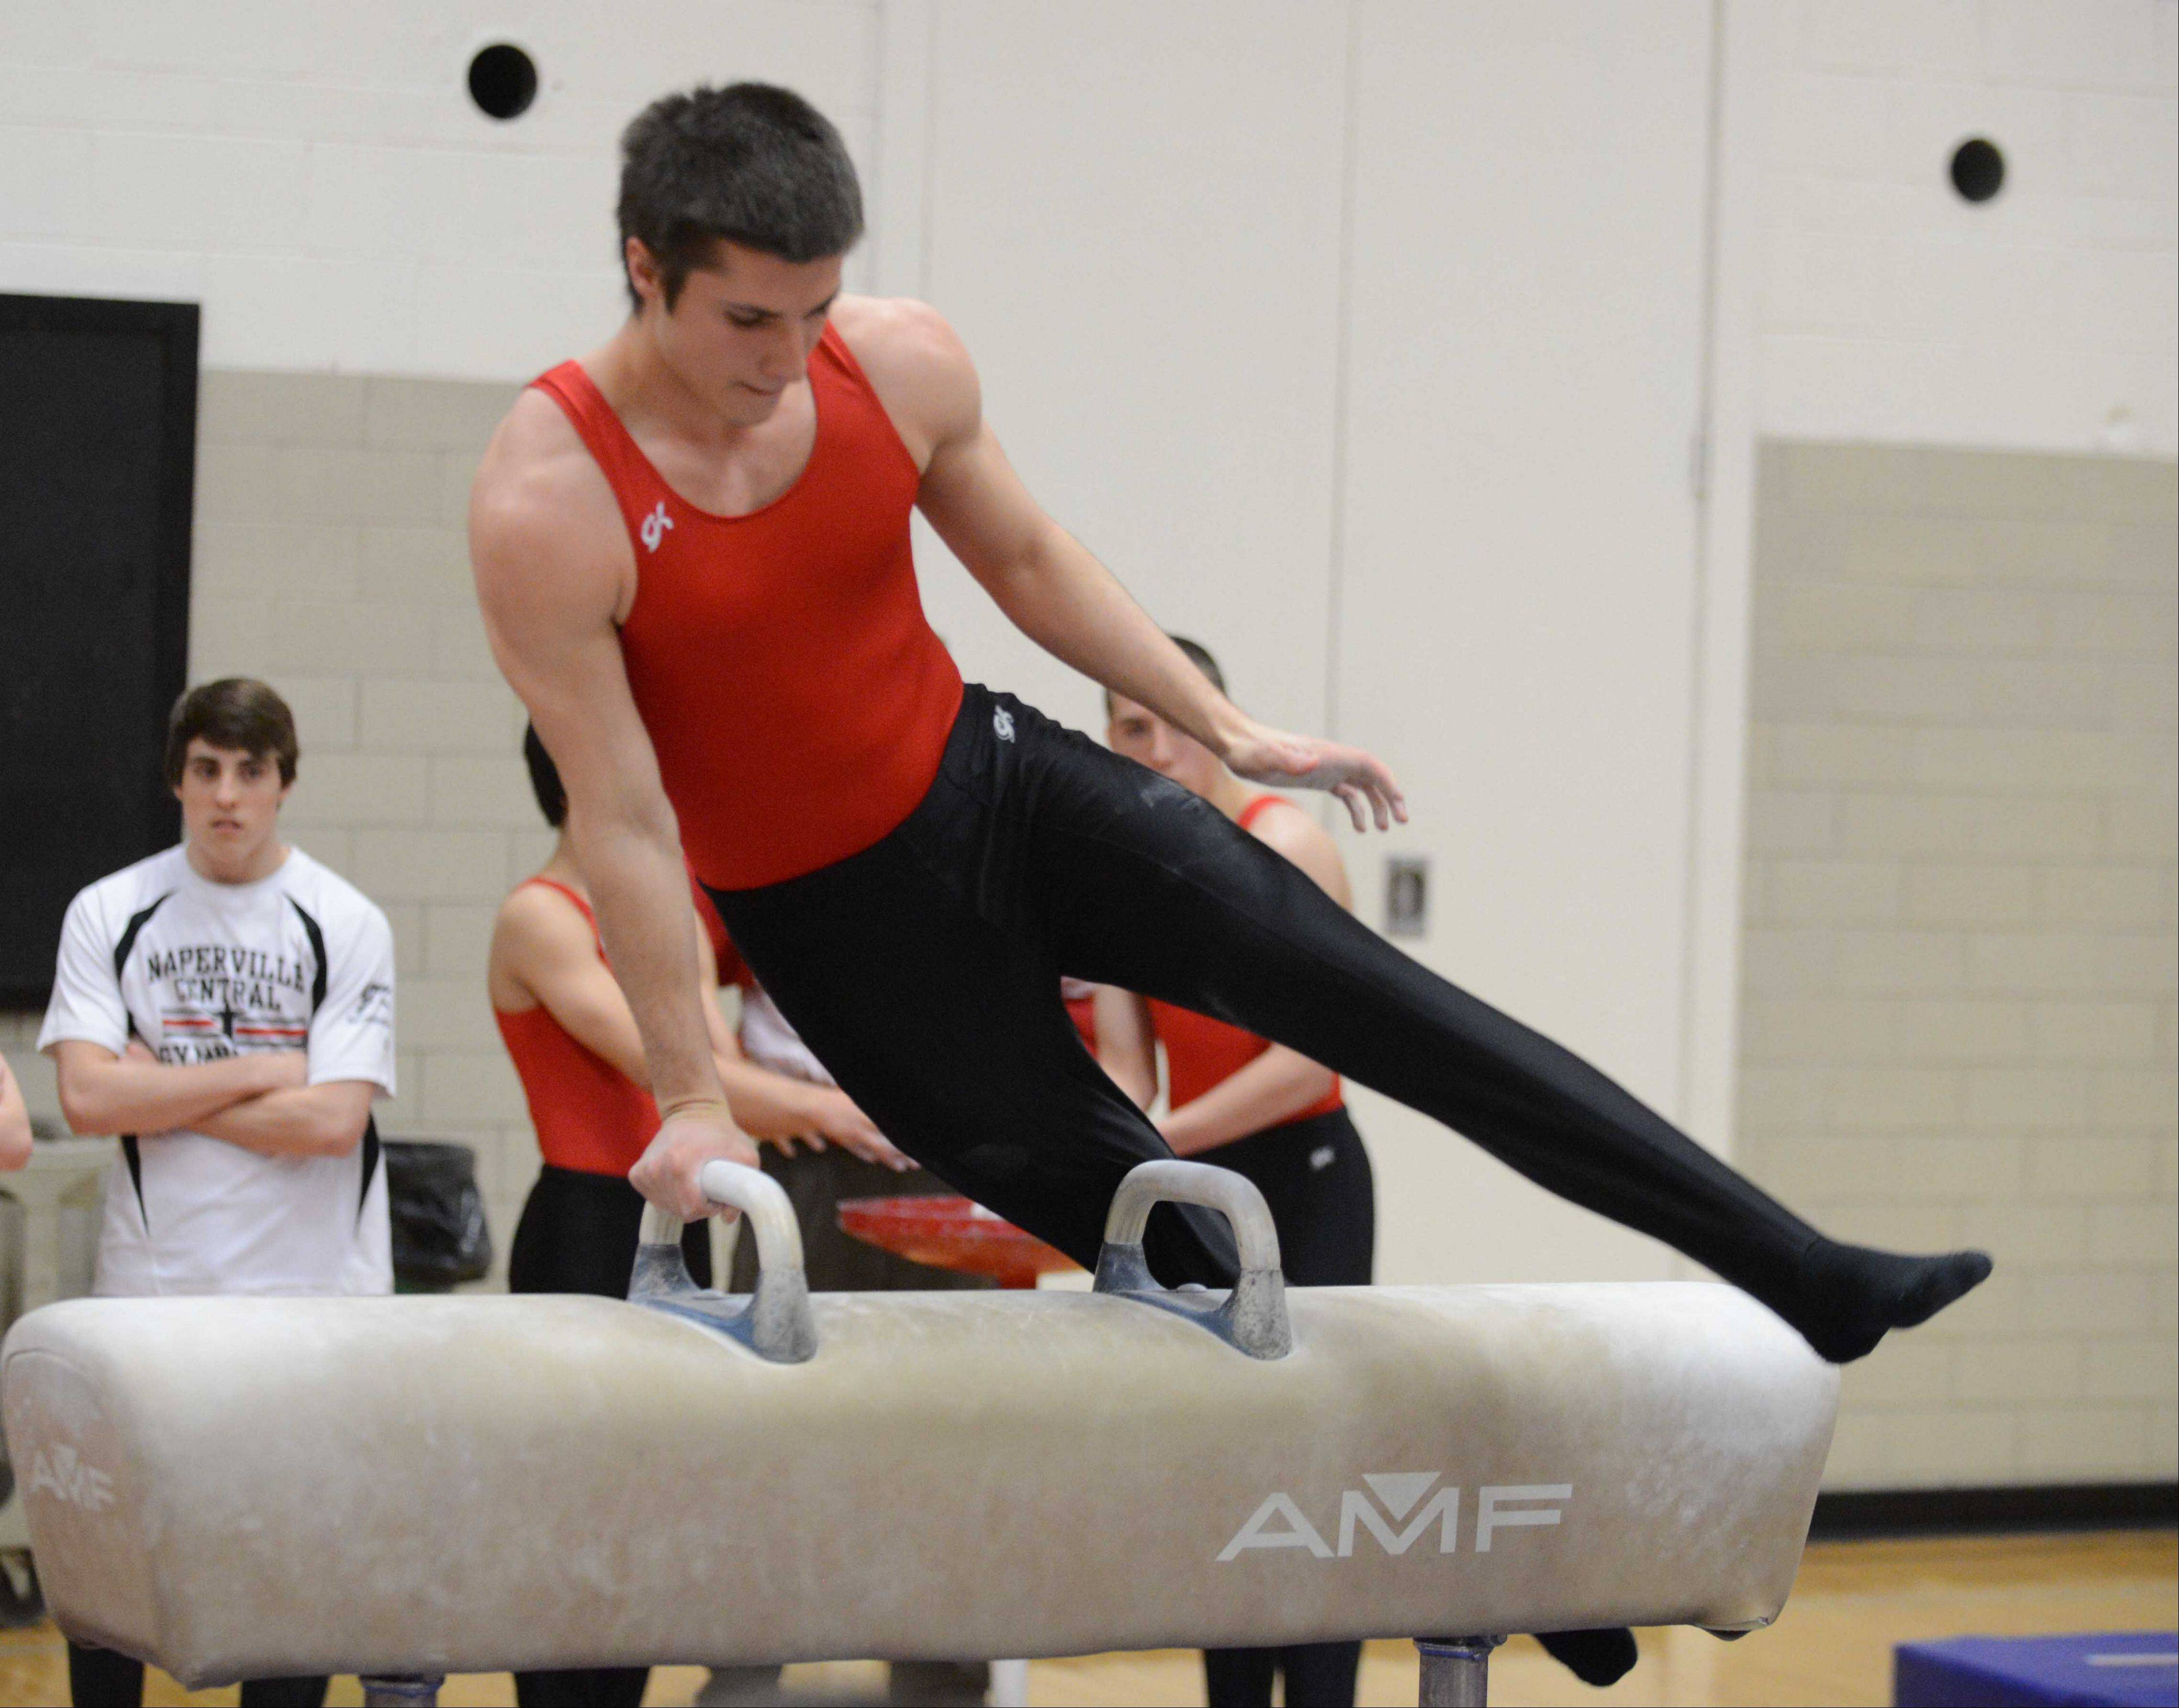 Robert Dietz of Naperville Central on the horse during the DuPage Valley Conference boys gymnastics meet on Friday at Glenbard East.